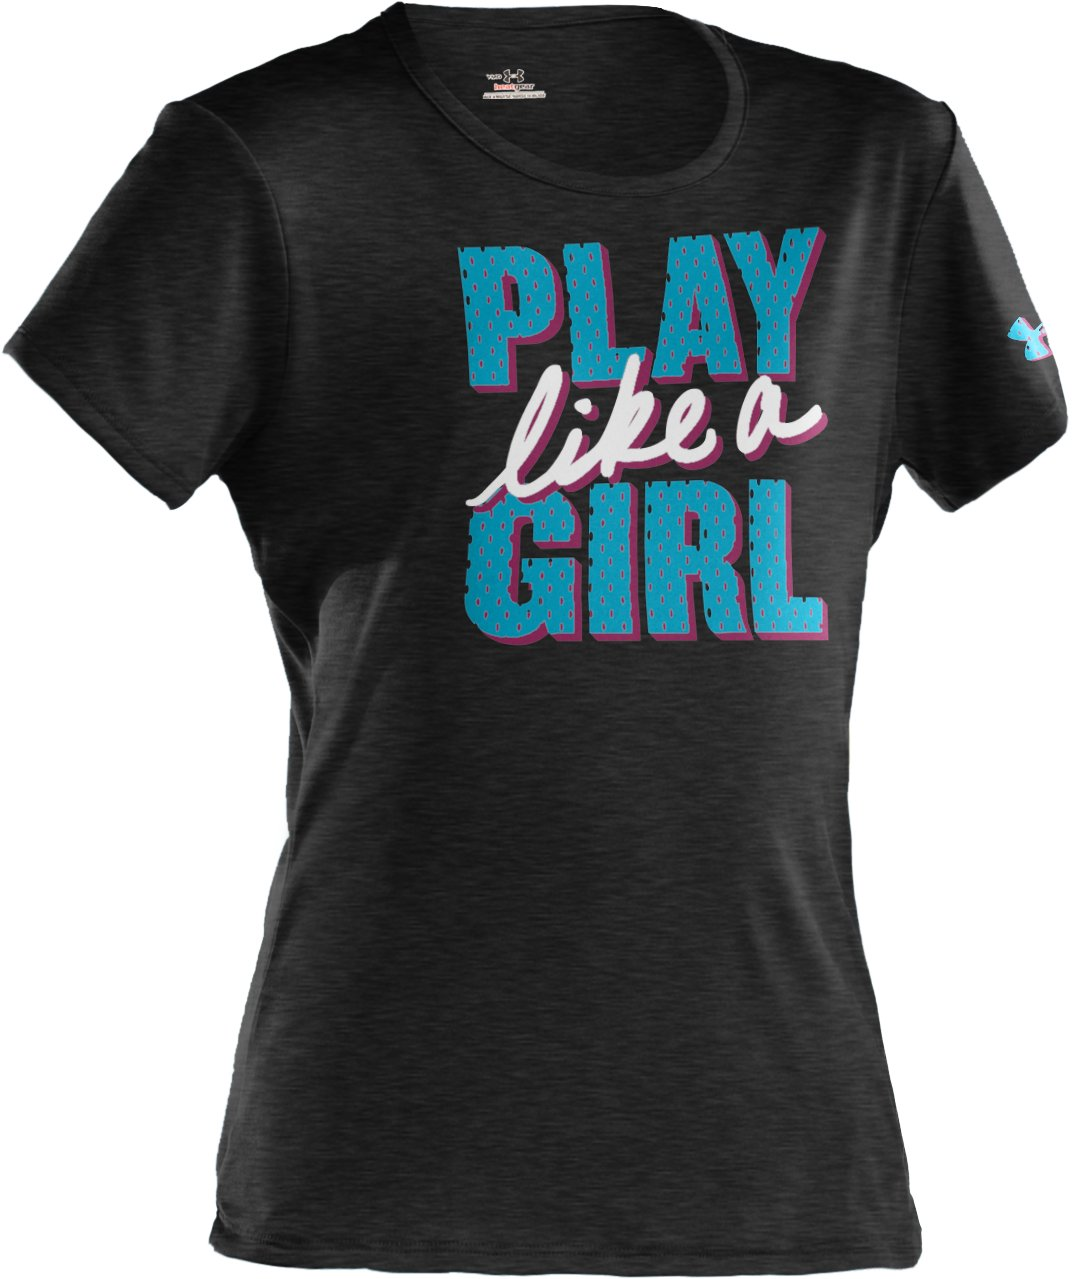 Girls' Play Like A Girl Graphic T-Shirt, Asphalt Heather